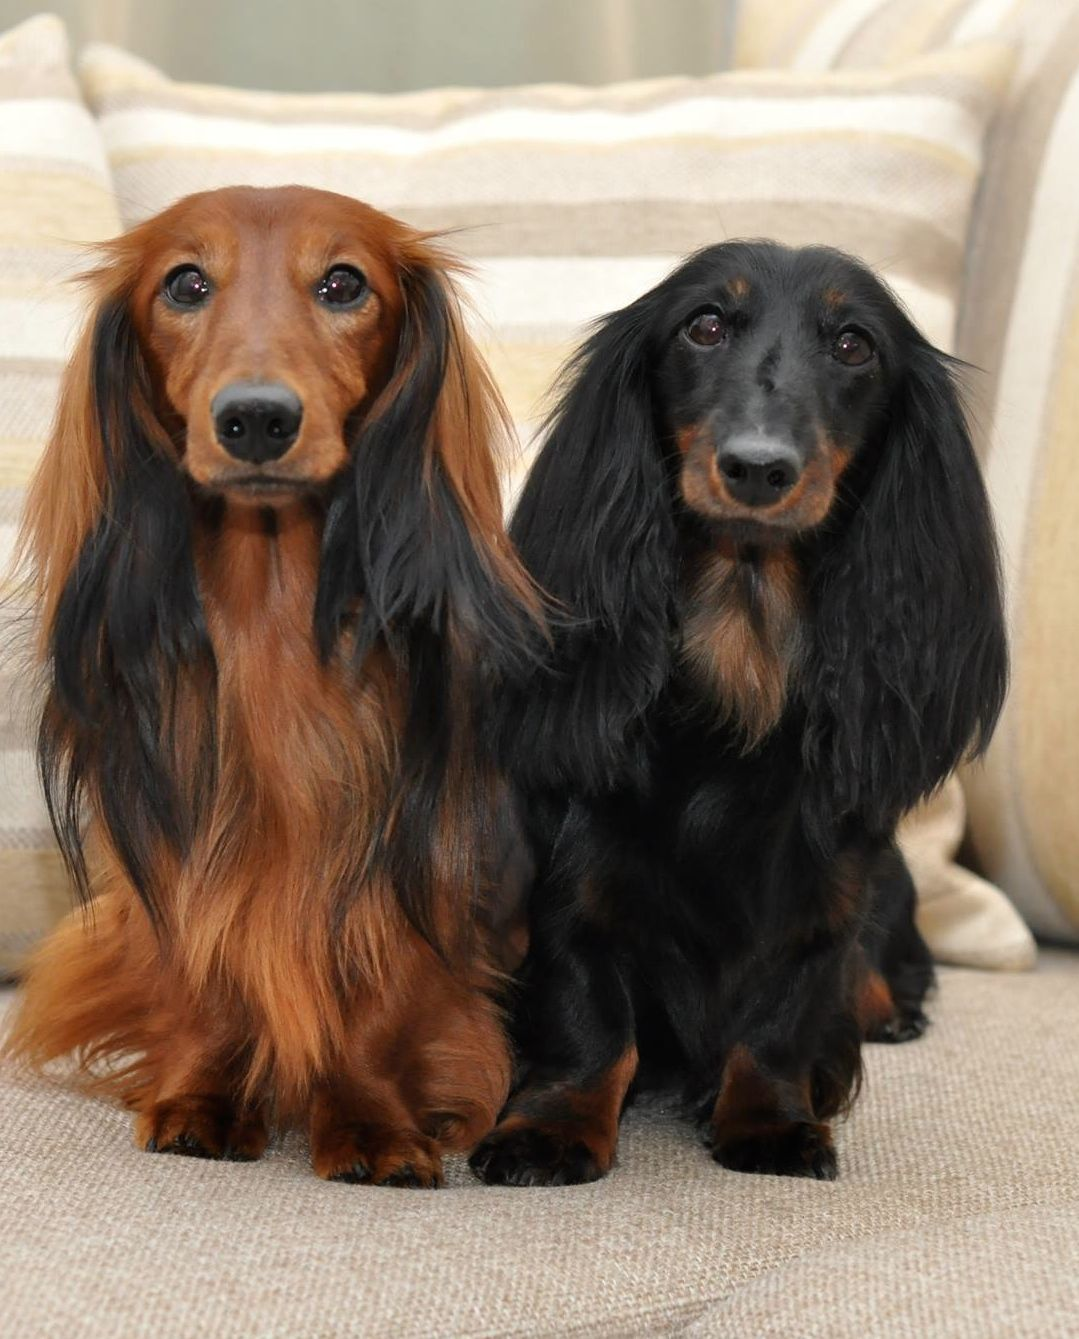 Gorgeous Longhair Dachshund Dog Pillows Now Available Cushion